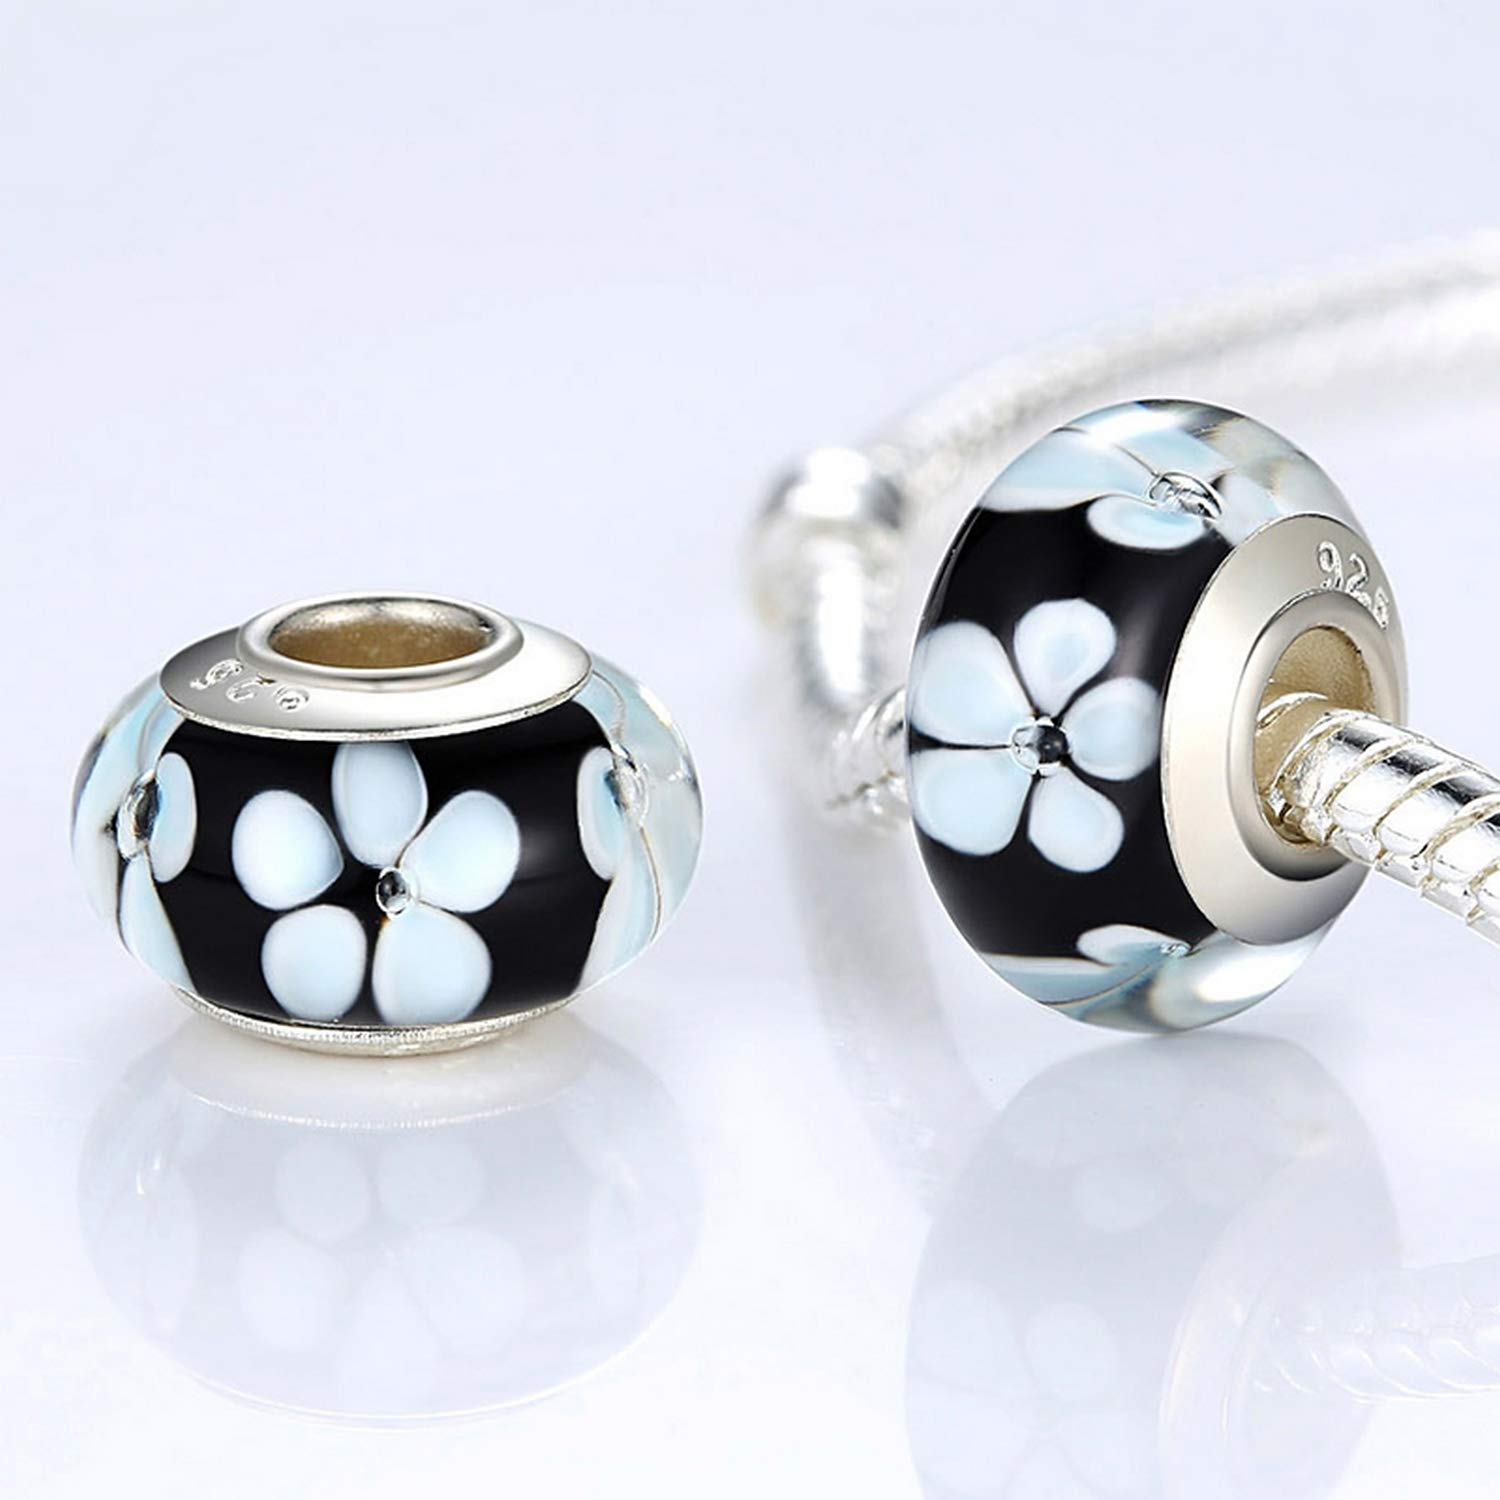 EverReena Beads Black Flower Murano Glass Charm for Silver Bracelets